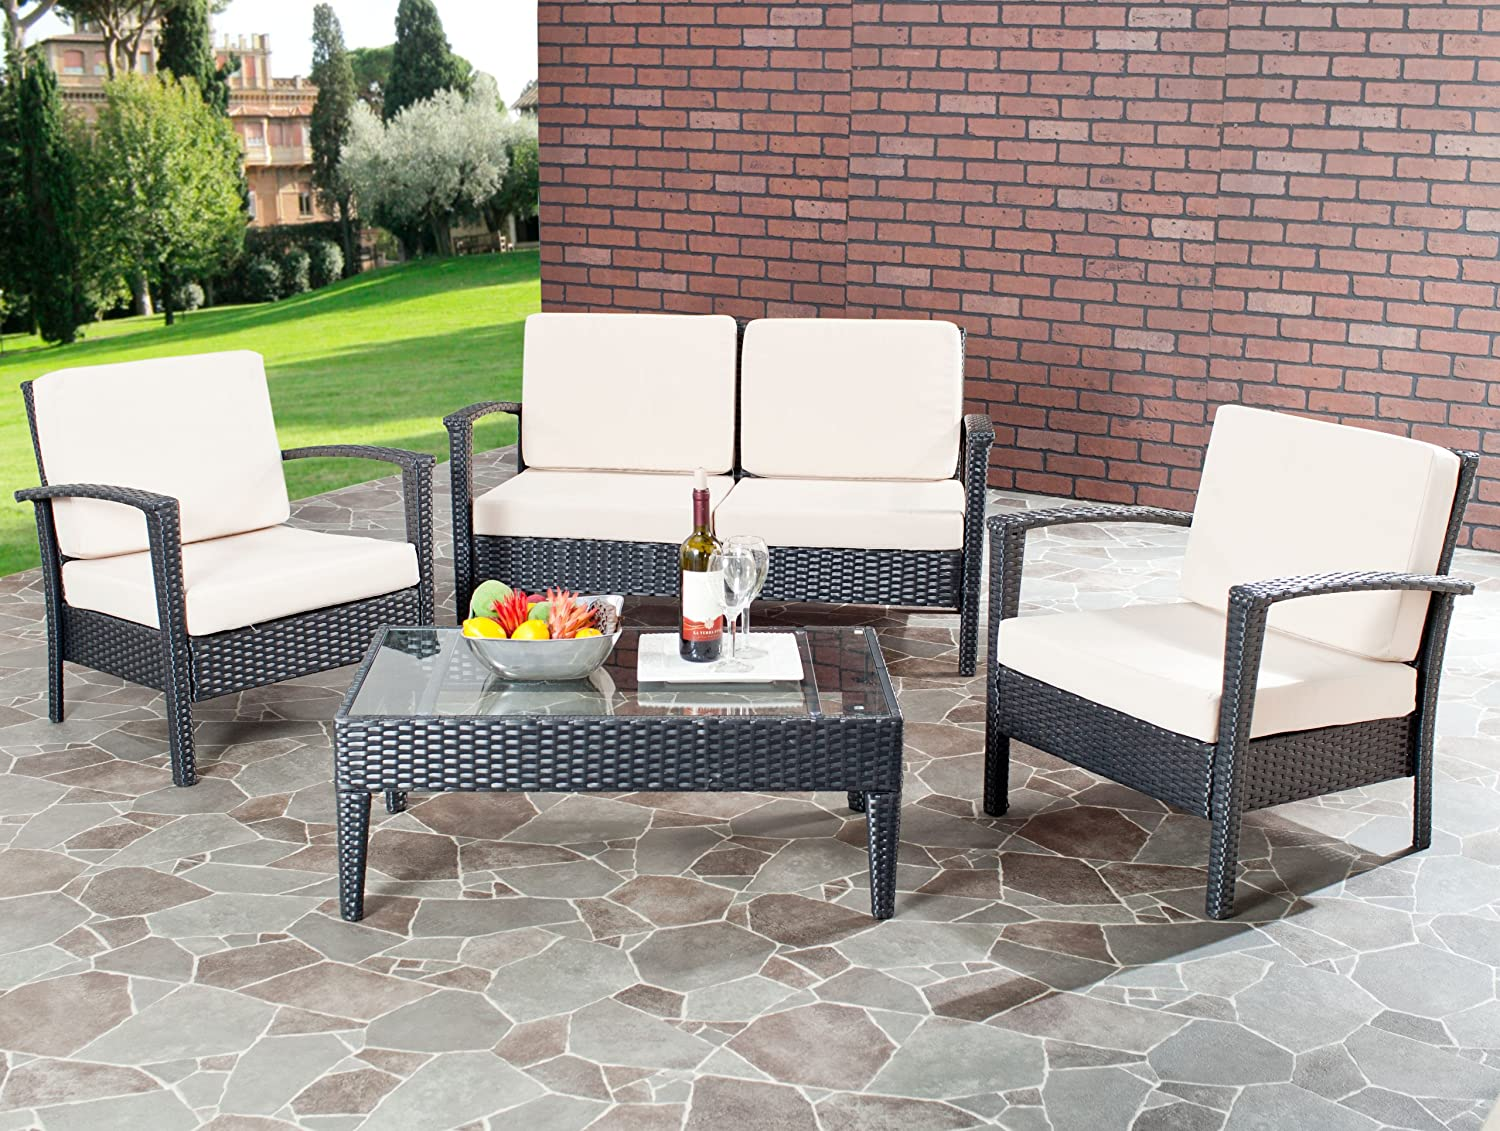 amazoncom safavieh home collection glass top 4piece patio furniture set outdoor and patio furniture sets patio lawn u0026 garden